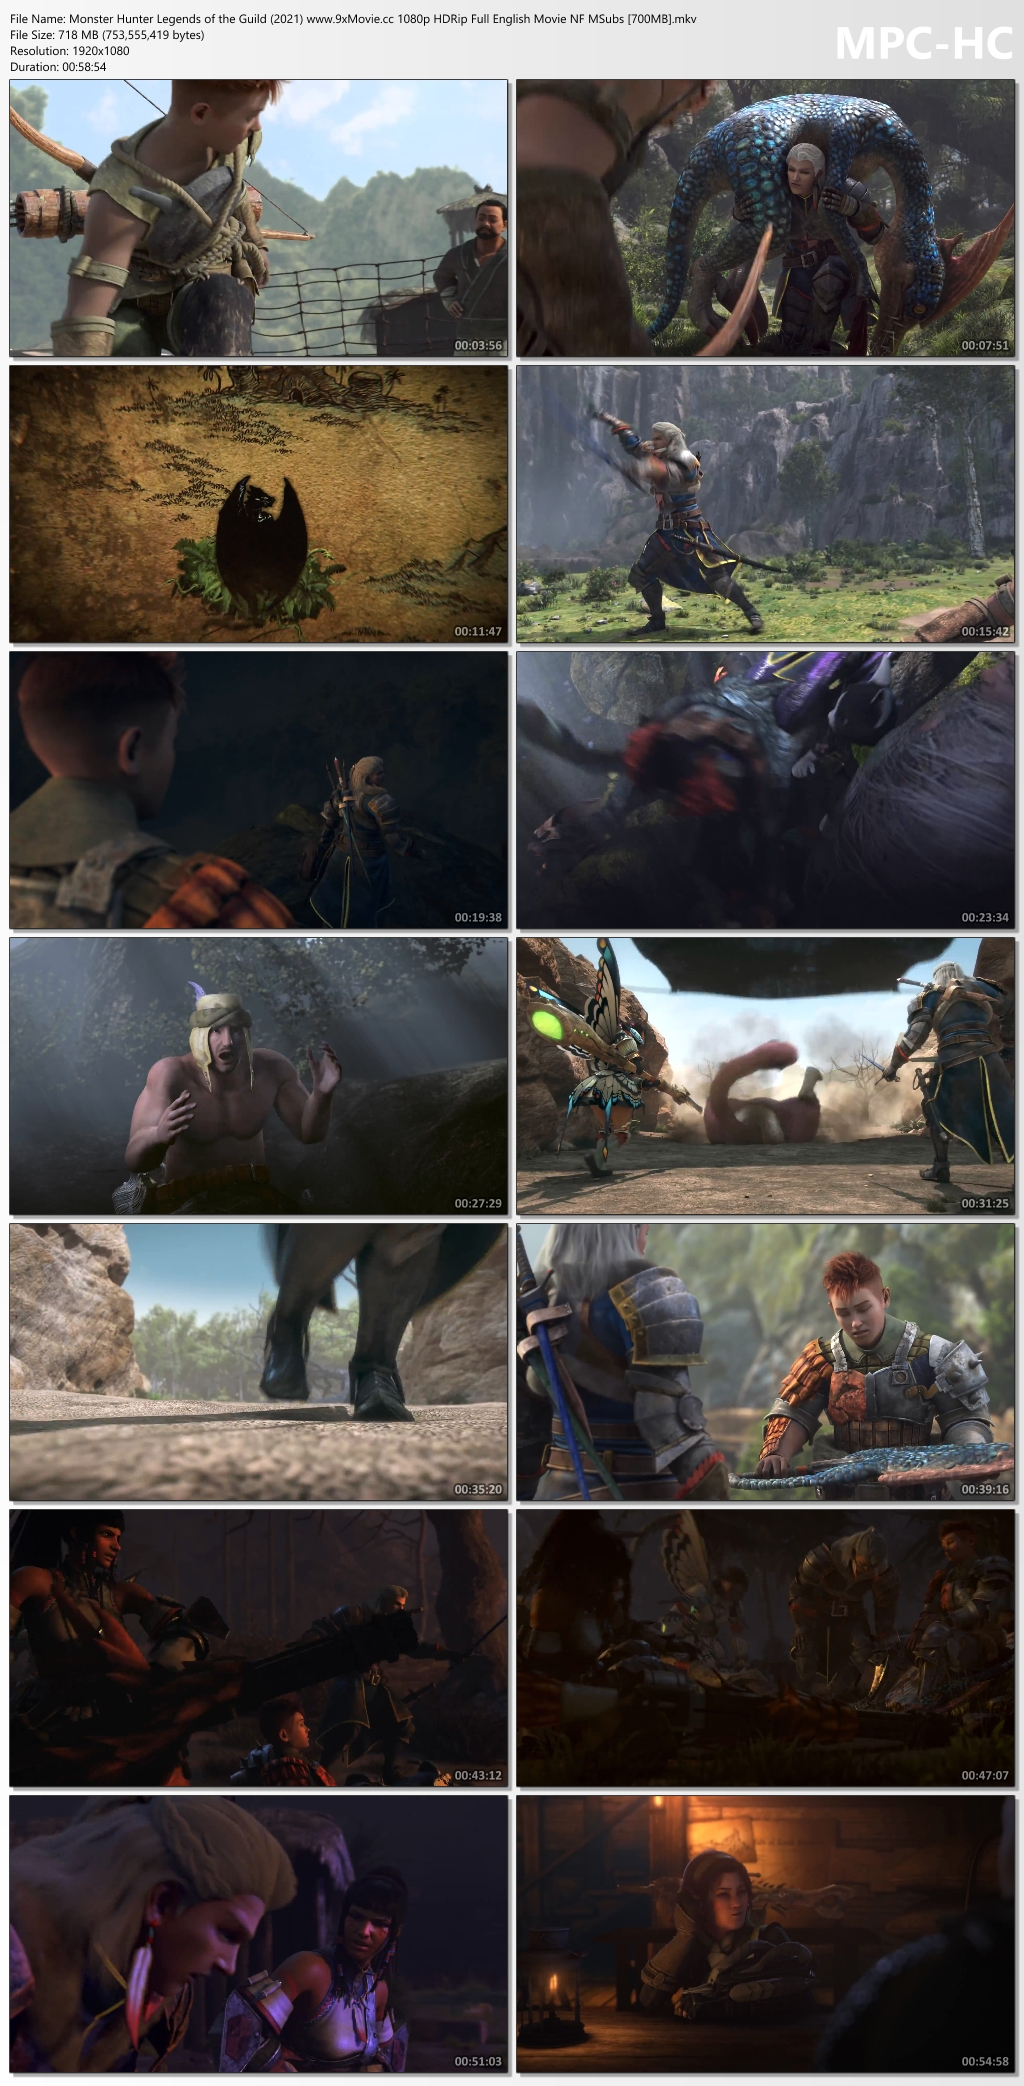 Monster-Hunter-Legends-of-the-Guild-2021-www-9x-Movie-cc-1080p-HDRip-Full-English-Movie-NF-MSubs-700